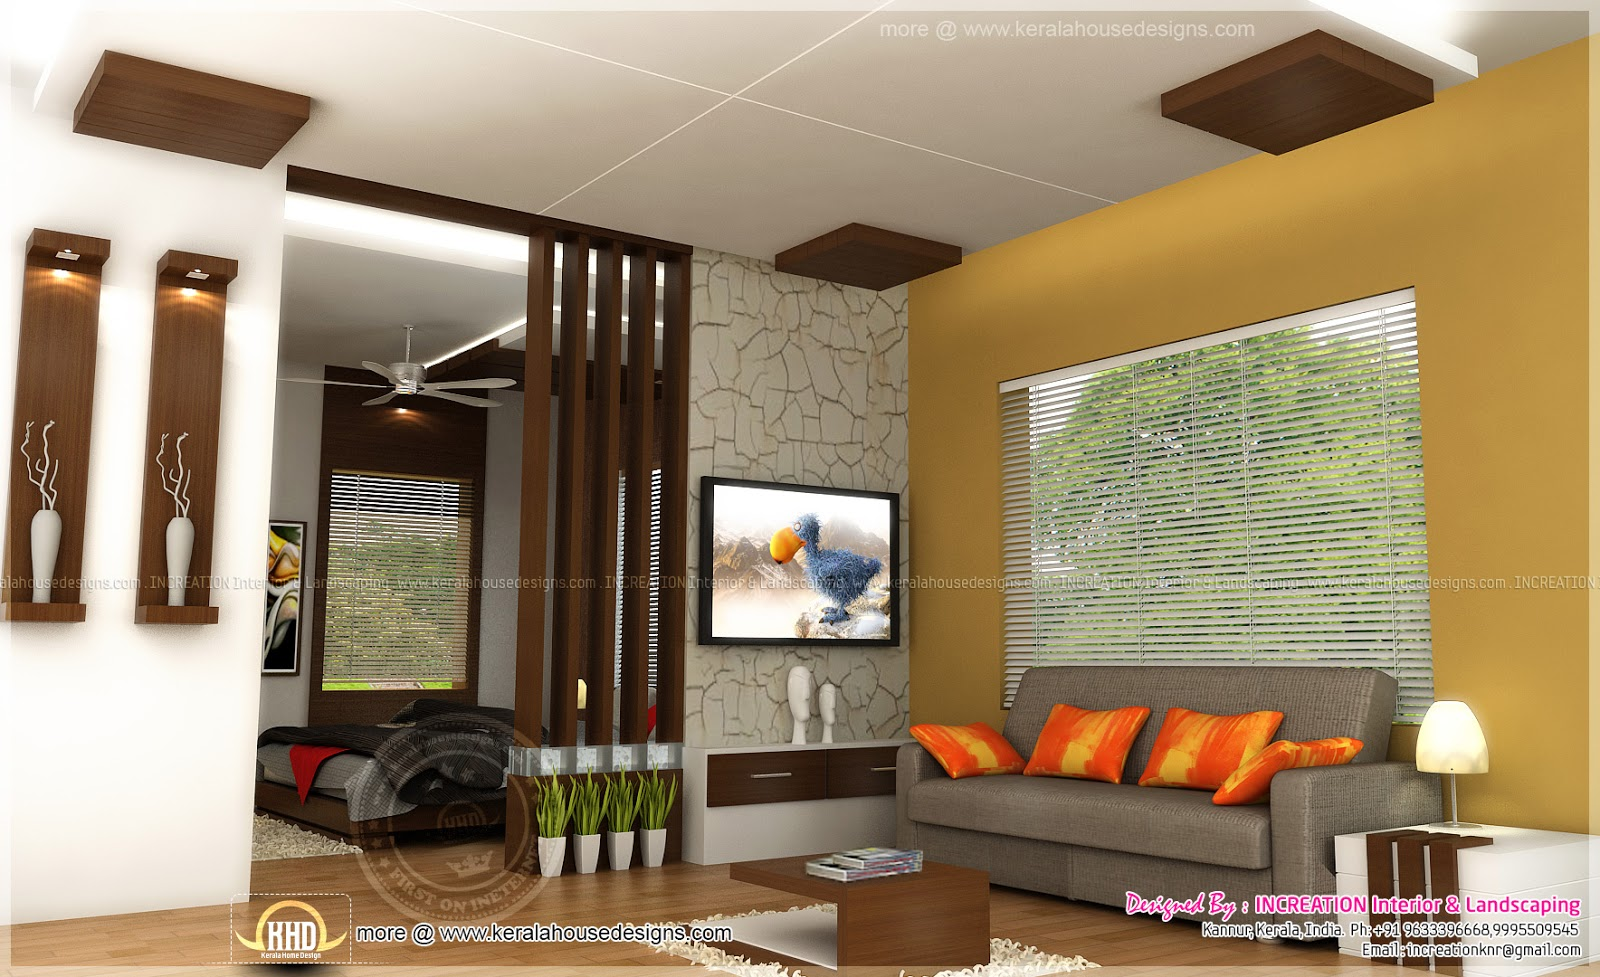 Interior designs from kannur kerala kerala home design for Interior designs in house